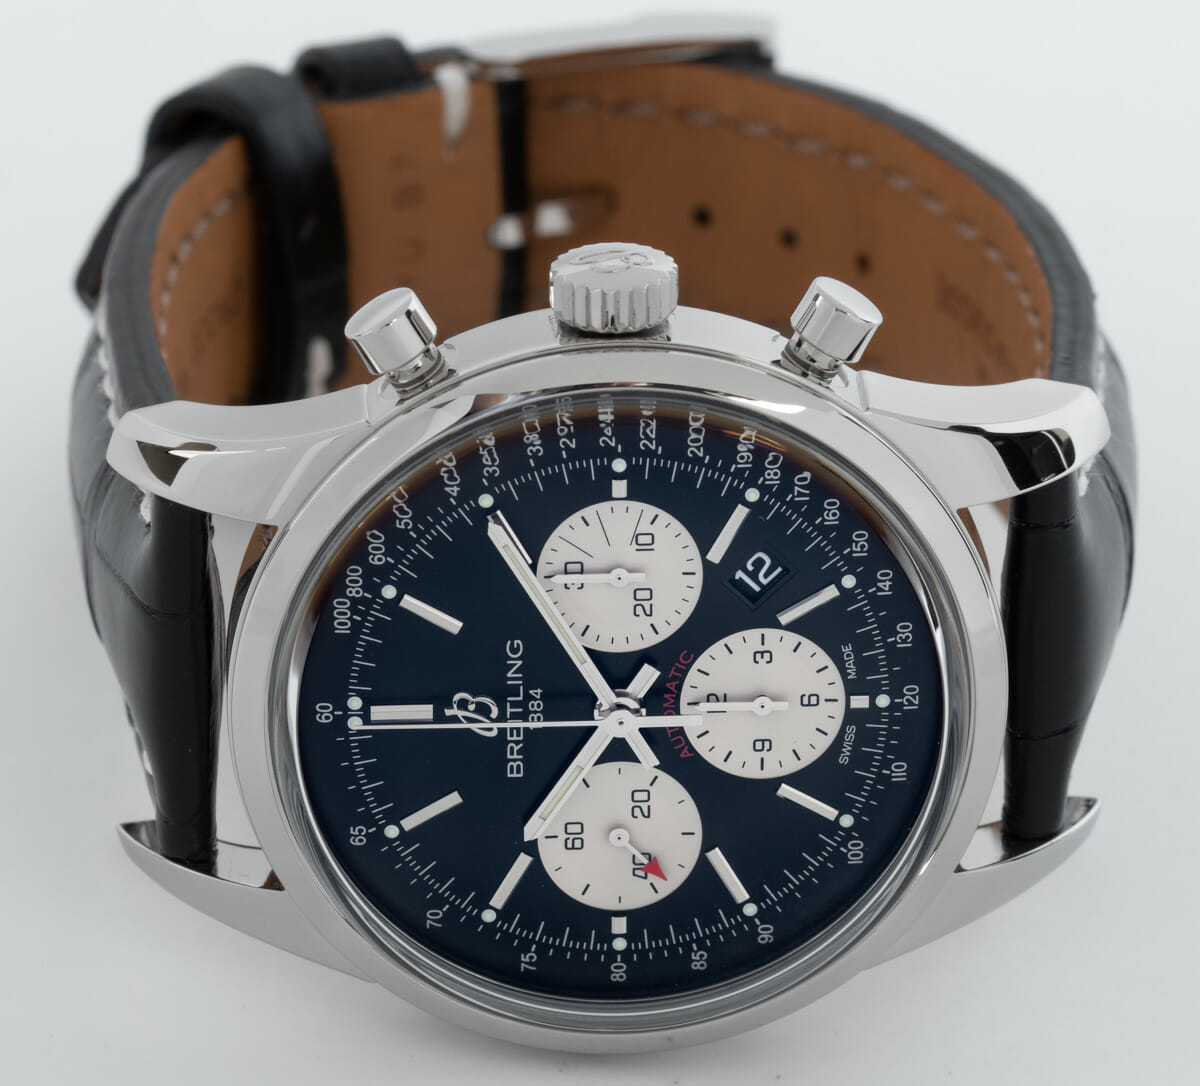 Front View of TransOcean Chronograph